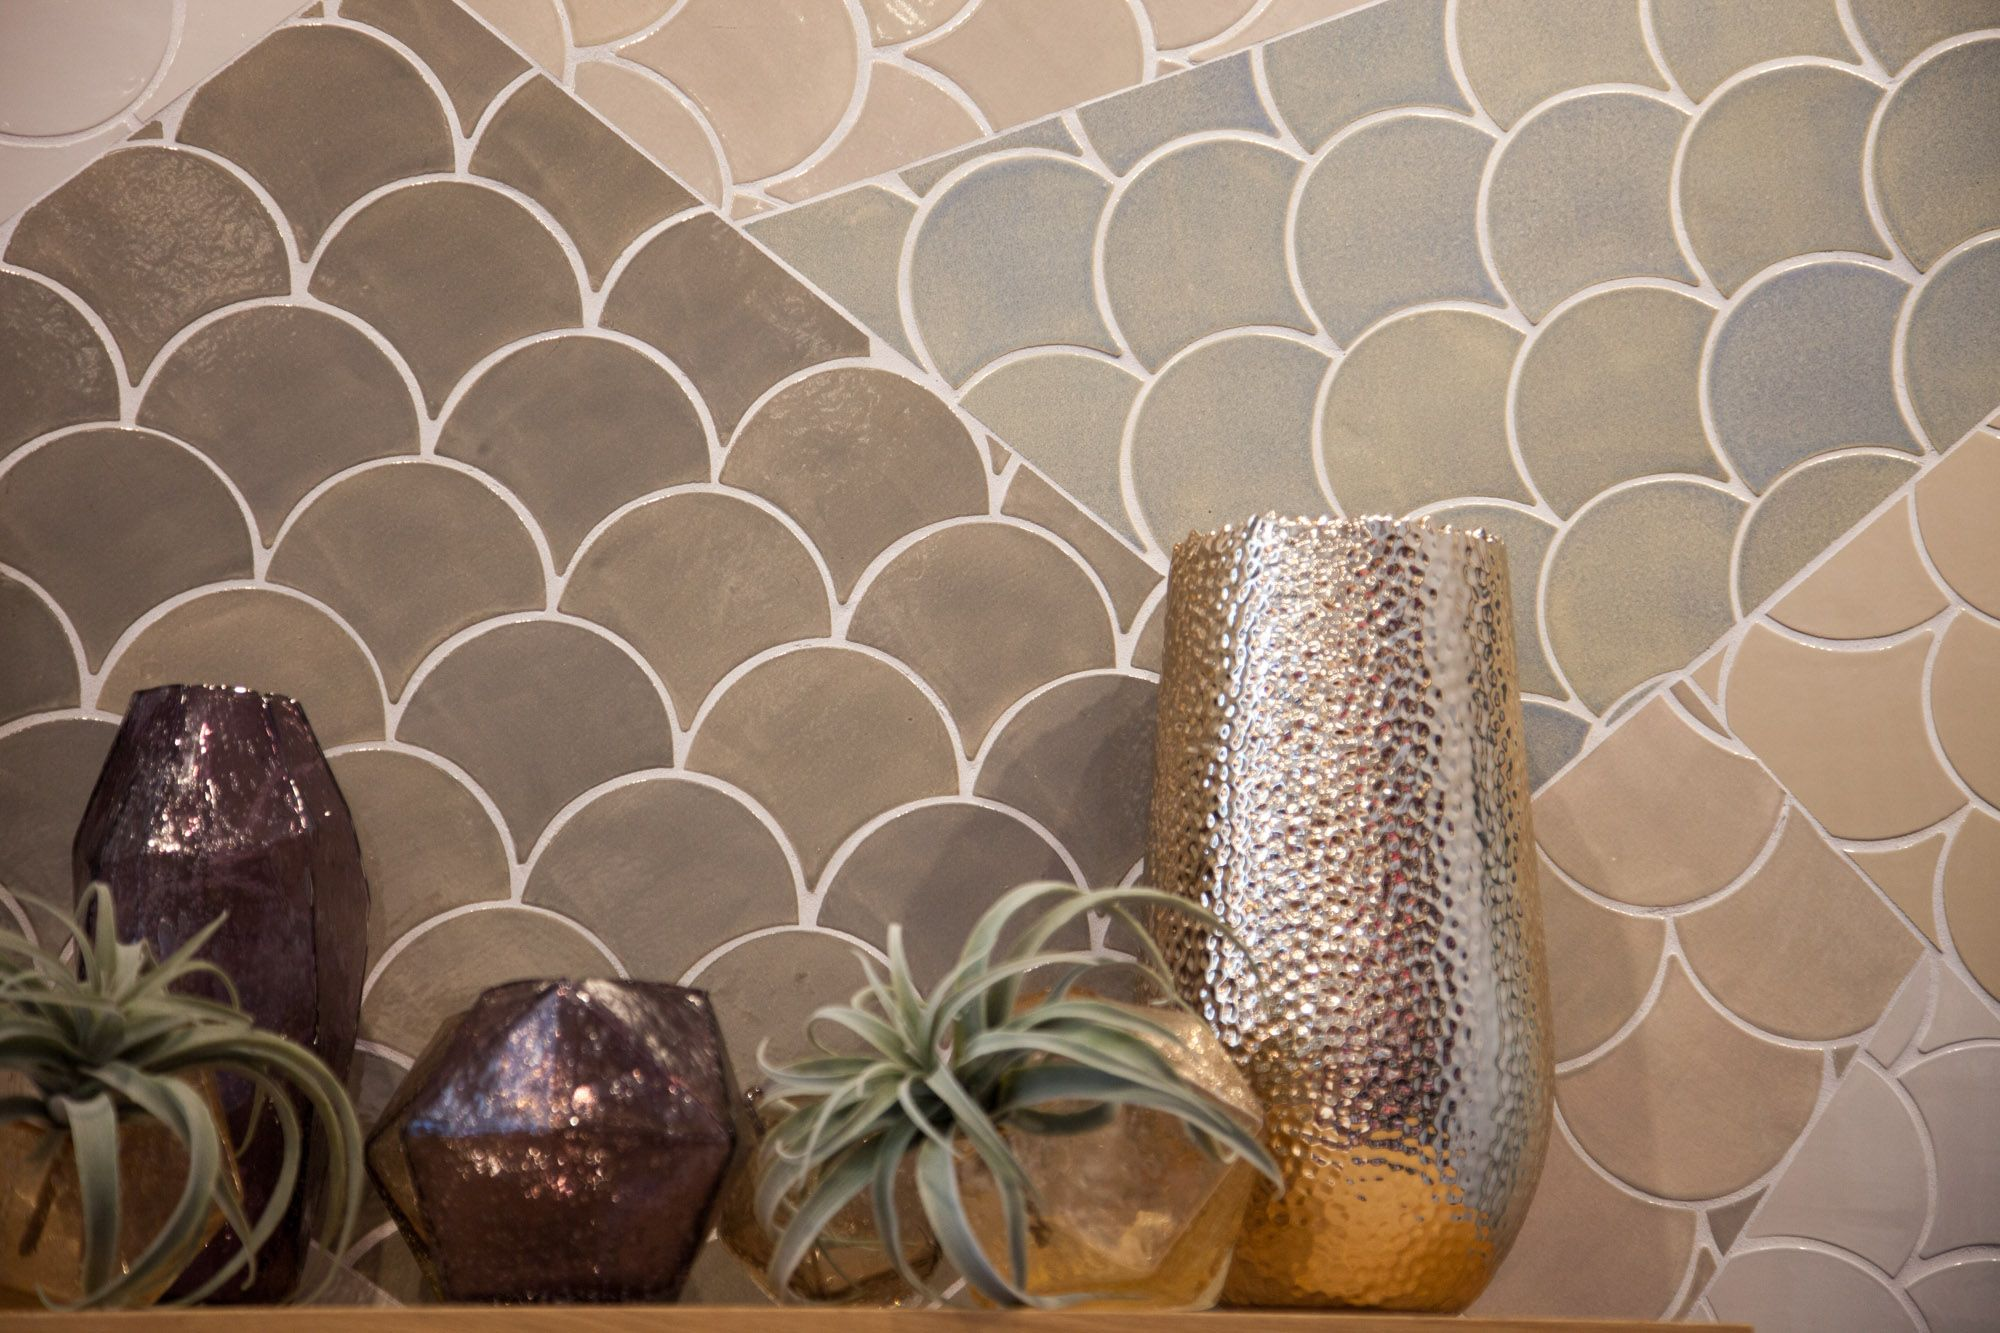 Commercial subway tiles and commercial subway tile and fish scales for lululemon temecula ca artisan tile company hand made dailygadgetfo Choice Image